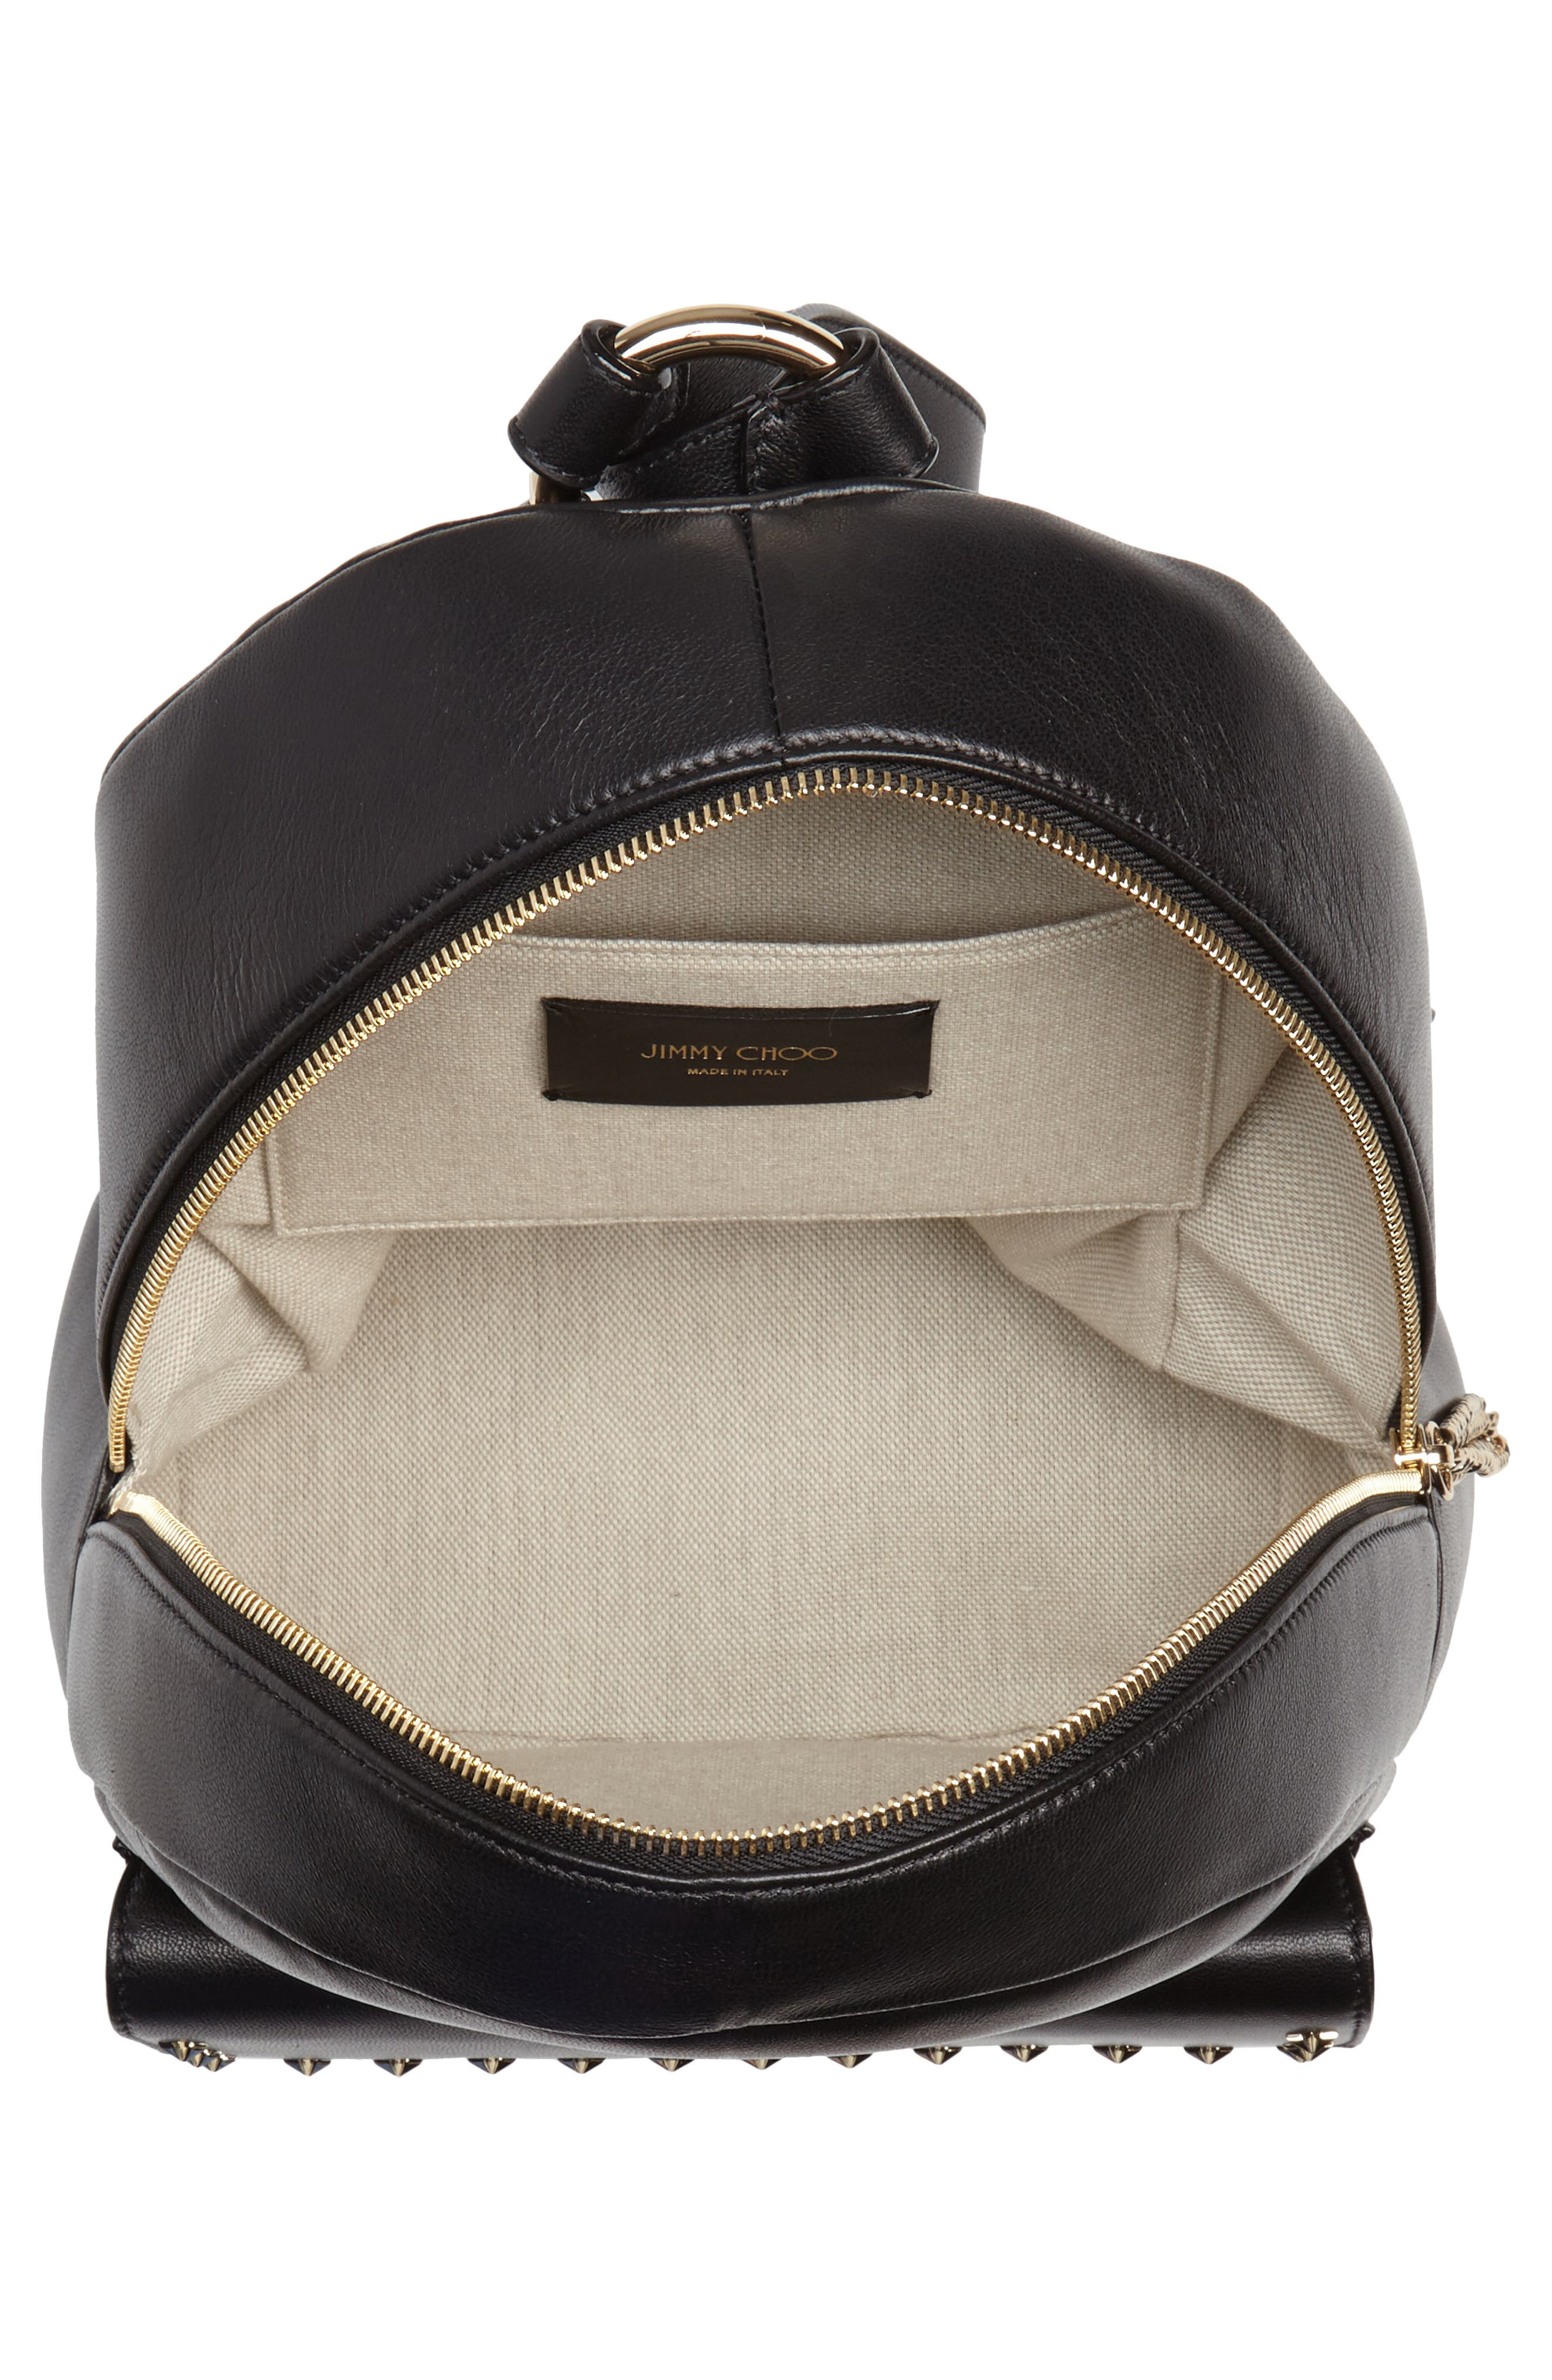 Cassie Star Studded Lambskin Leather Backpack,                             Alternate thumbnail 4, color,                             BLACK